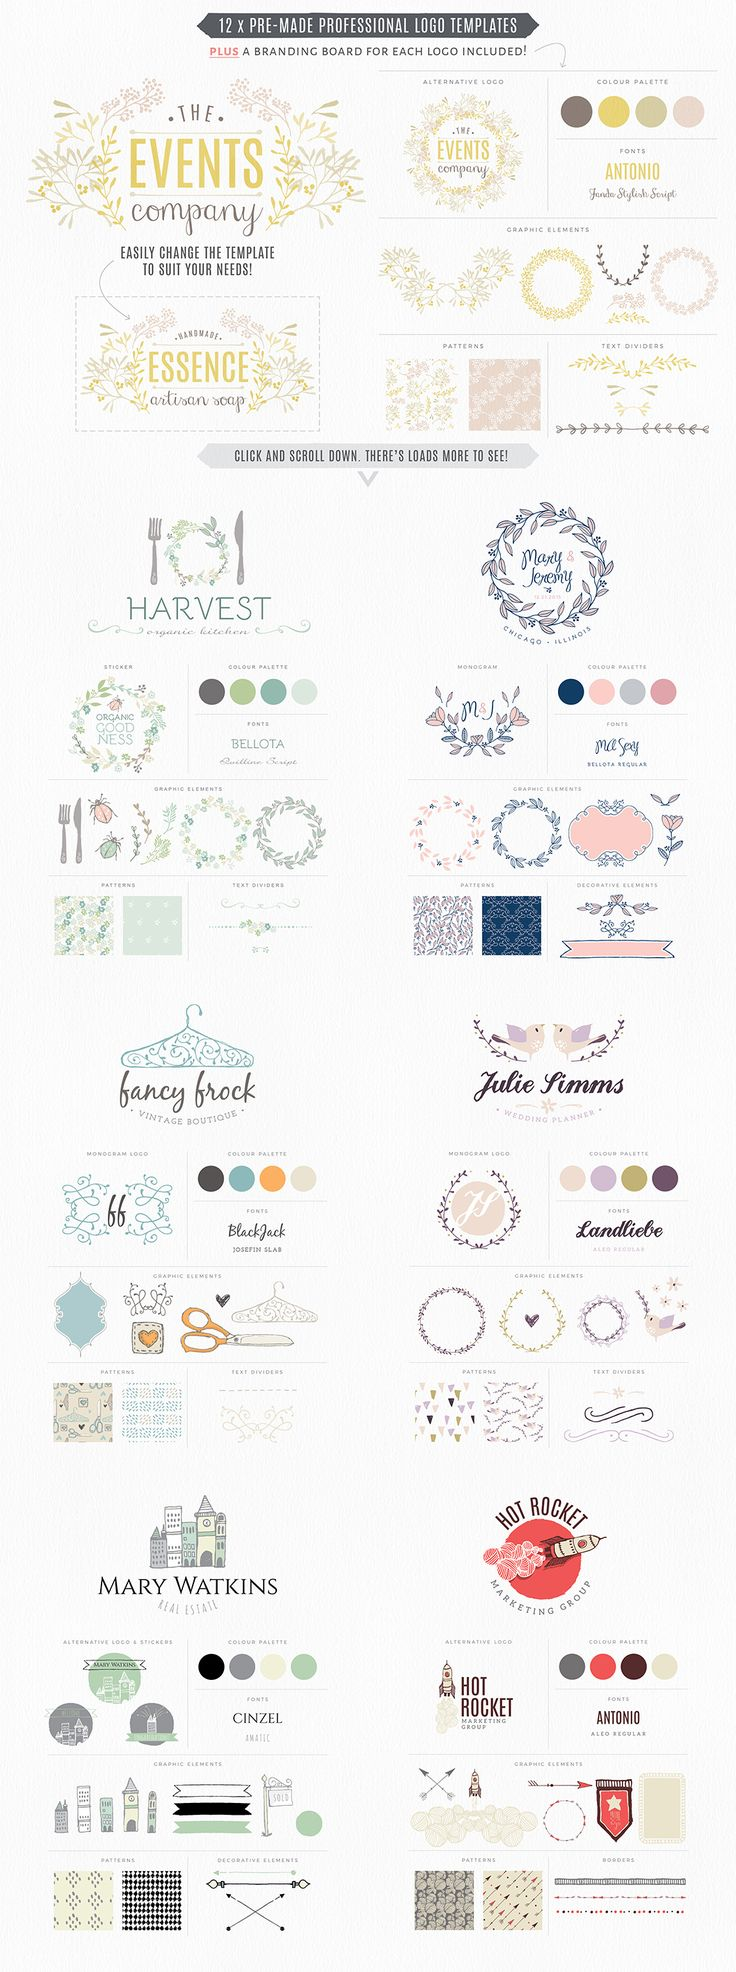 "Essential branding kit for Photoshop: Need to create a company brand, but don't know where to start? Or maybe your clients are always ""on a budget"" and expect an entire brand identity for next to nothing? Well look no further, because for a super-low price of $25 you'll get over 300 elements including 12 pre-made logo templates PLUS a matching brand board for each logo! With loads of extra stuff ready for you to design-up a storm!"